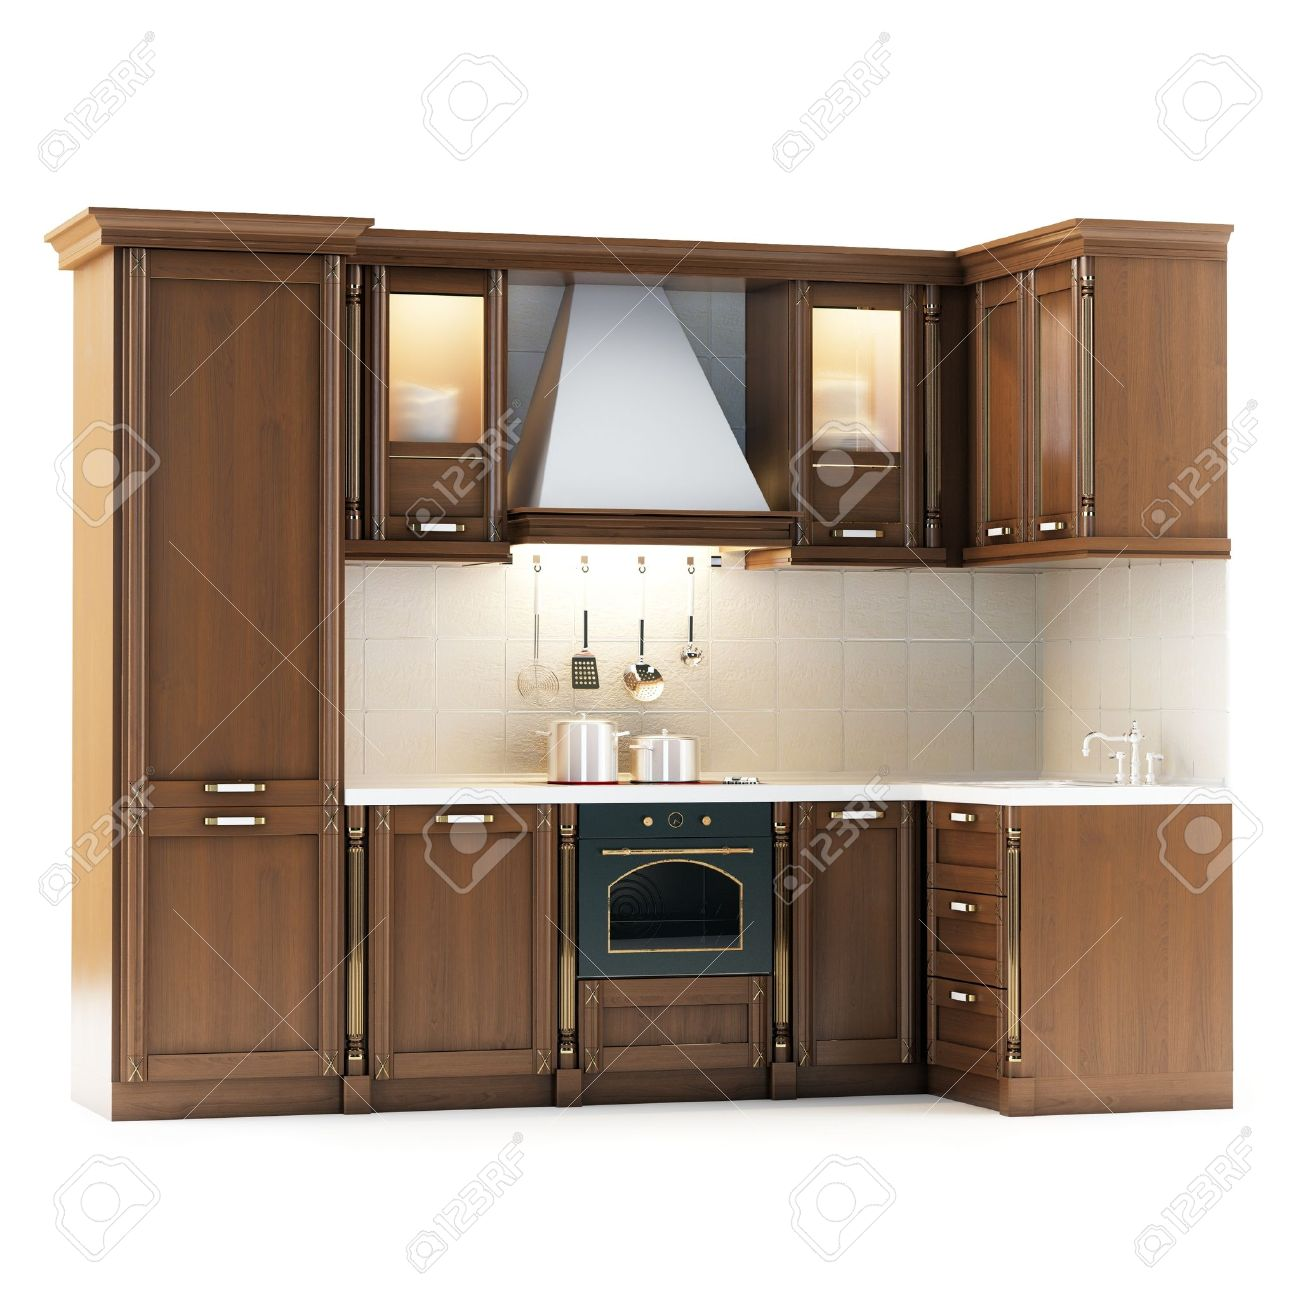 Classic Wooden Kitchen Isolated On White Stock Photo - 17215685